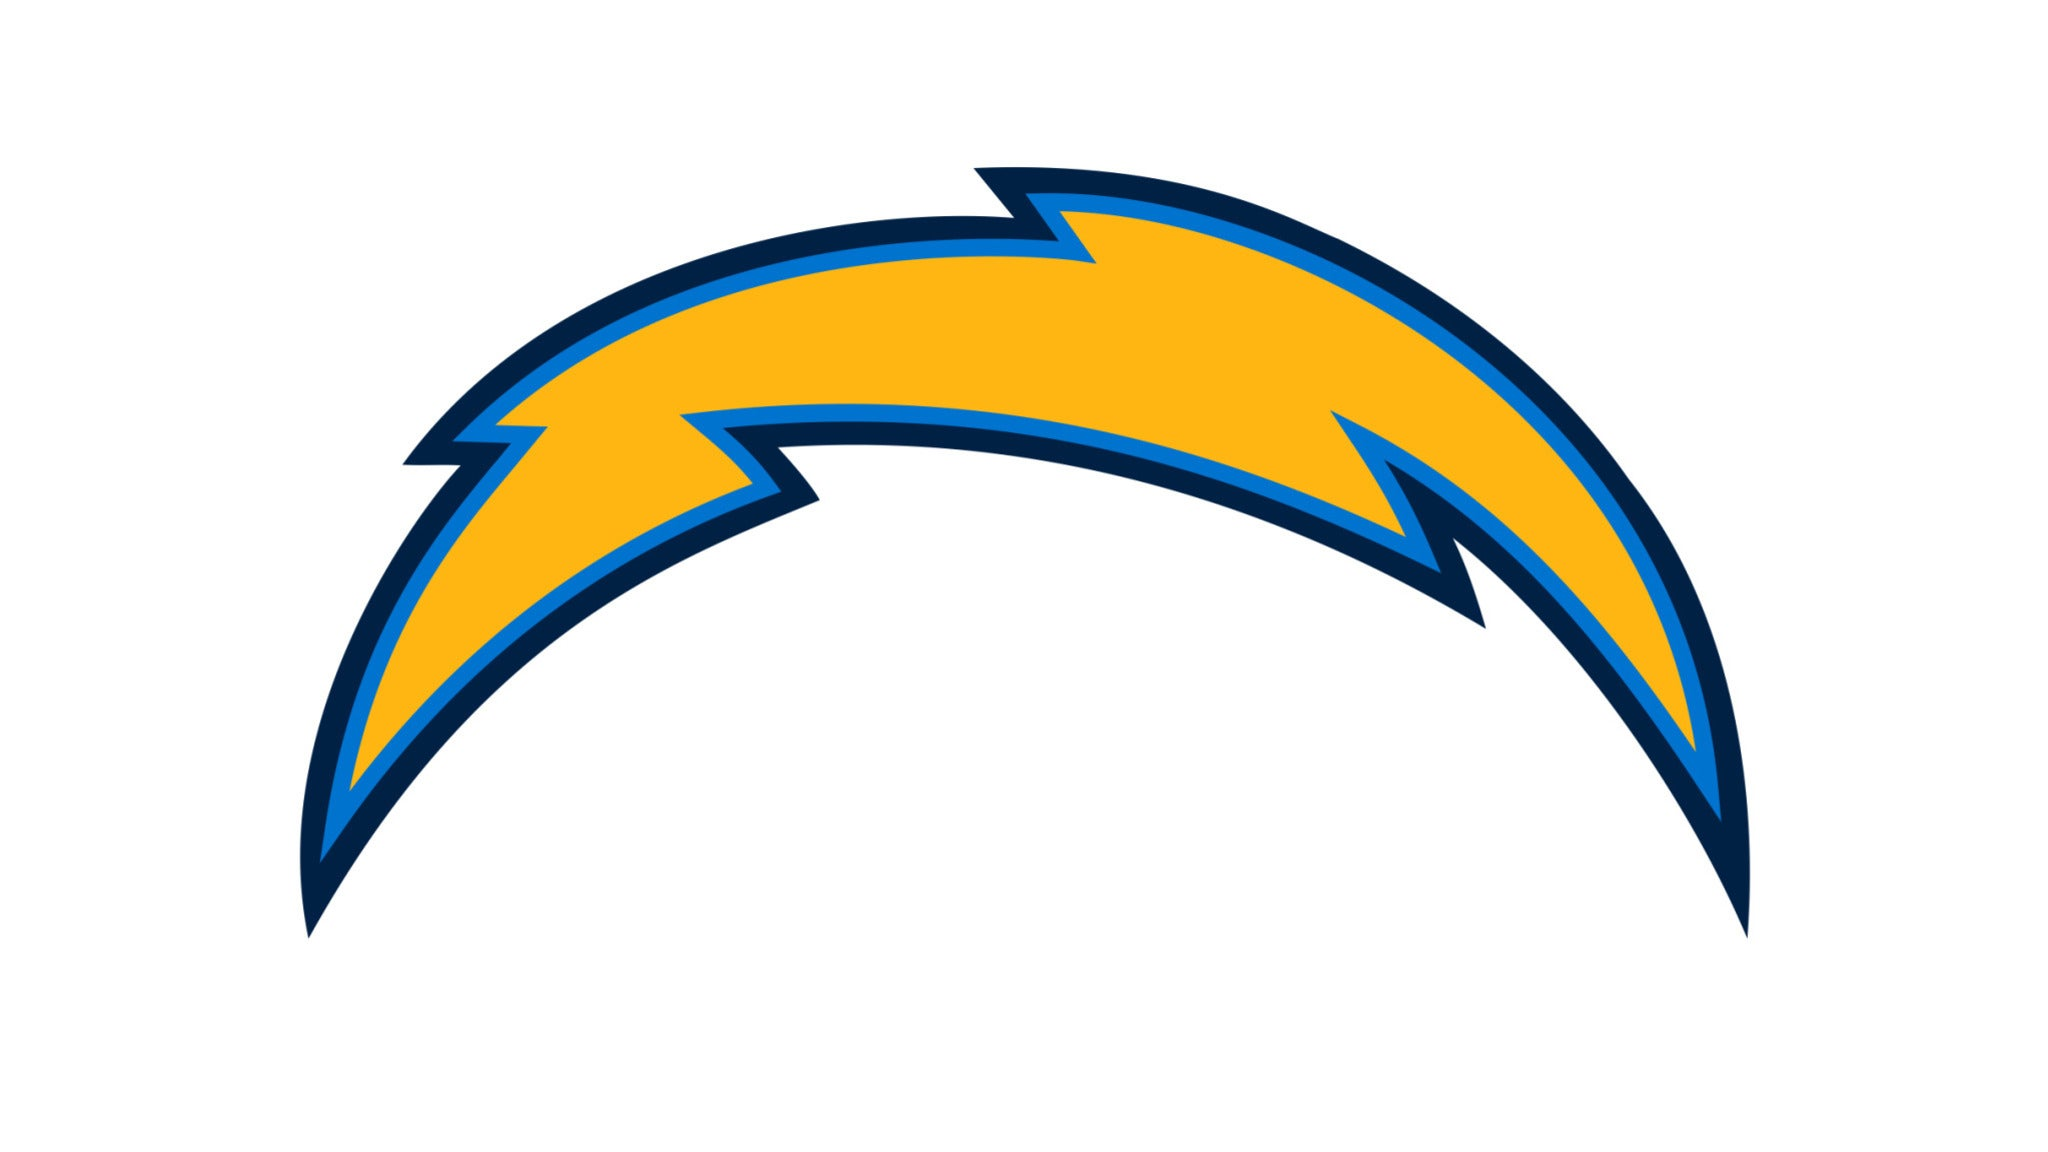 San Diego Chargers vs. Tennessee Titans